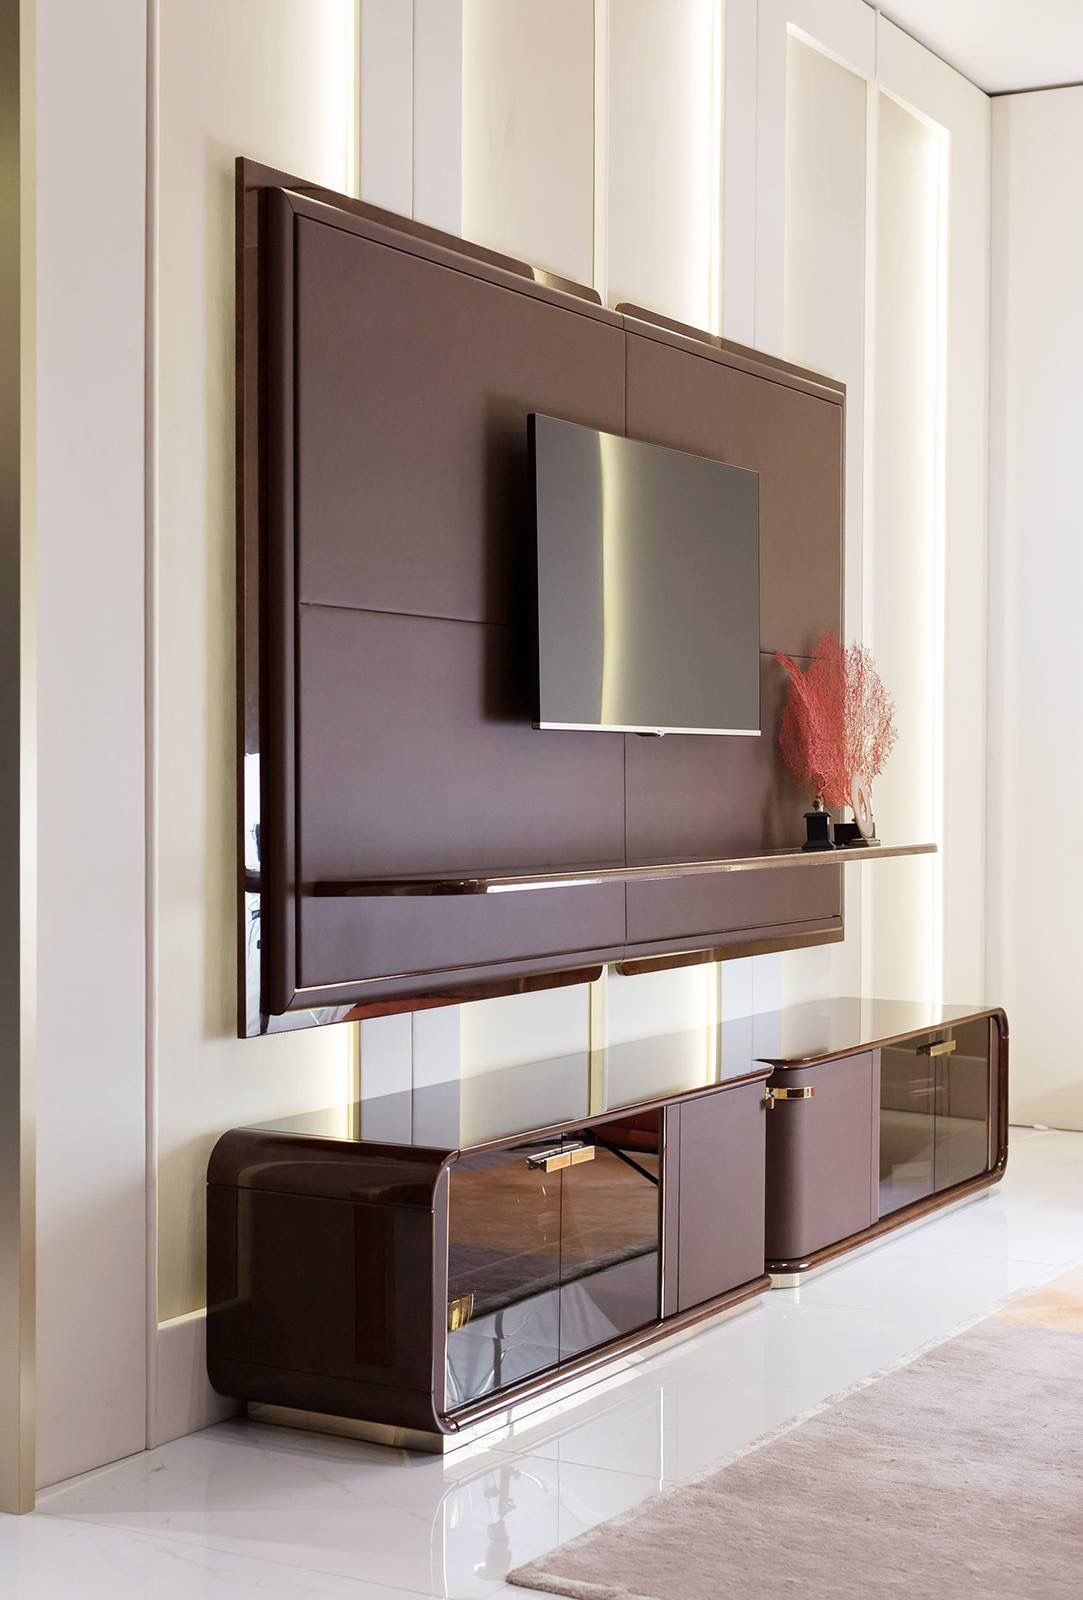 Latest Tv Unit Design: Pin By Shivika Dua On Wardrobes & Tv Units